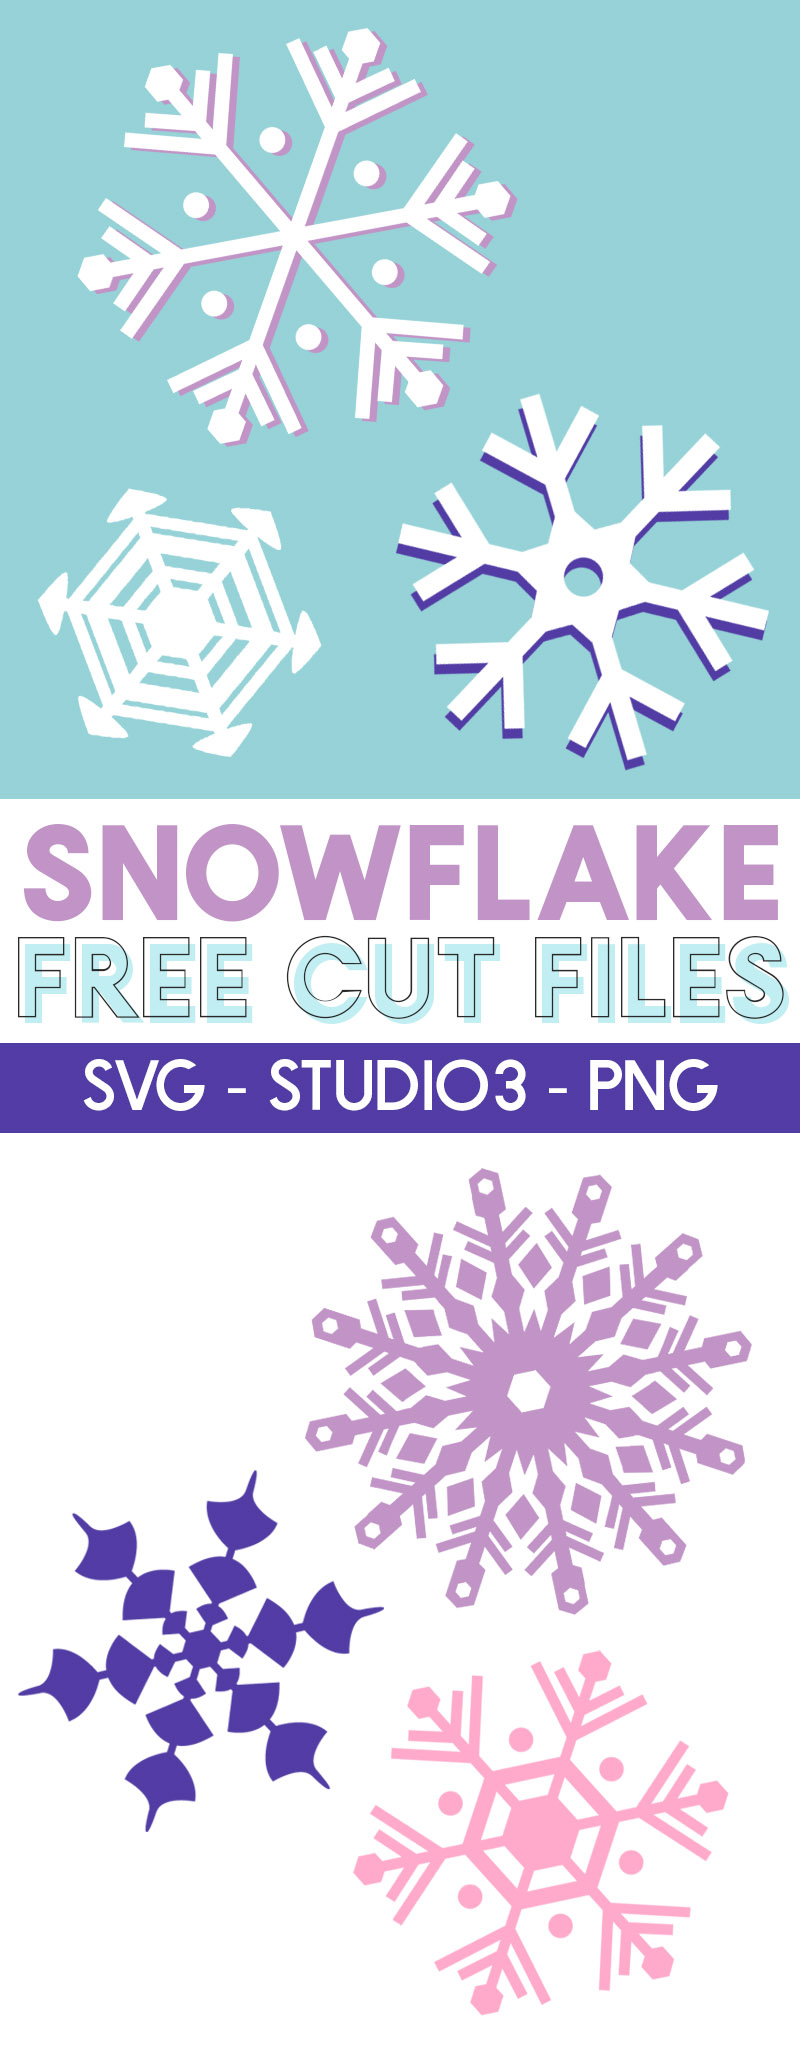 How To Work With Etched Glass Vinyl Amp Free Snowflake Svg